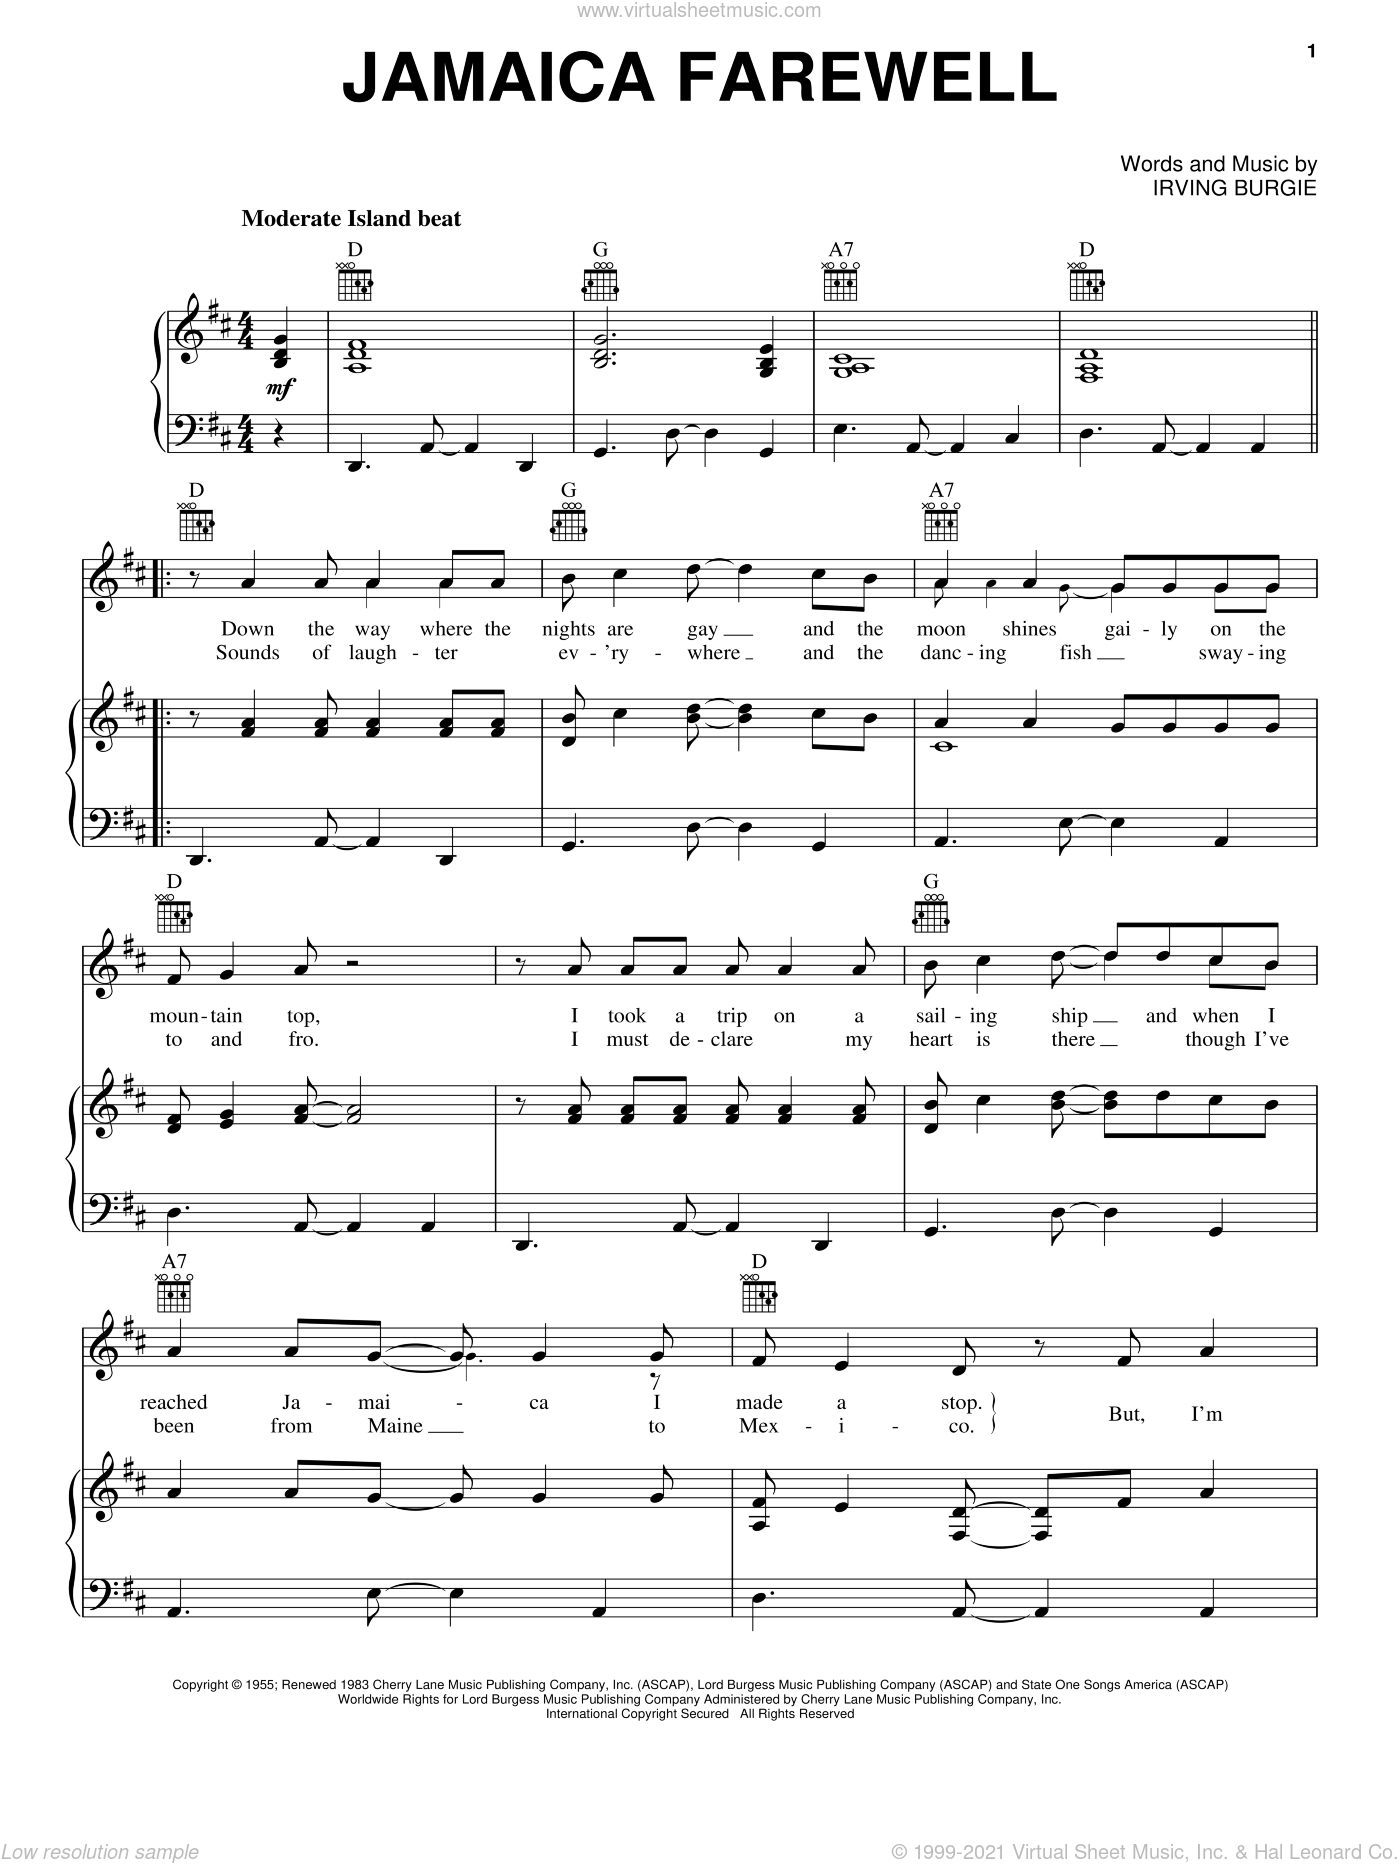 Jamaica Farewell sheet music for voice, piano or guitar by Harry Belafonte, Samuel E. Wright and Irving Burgie, intermediate skill level